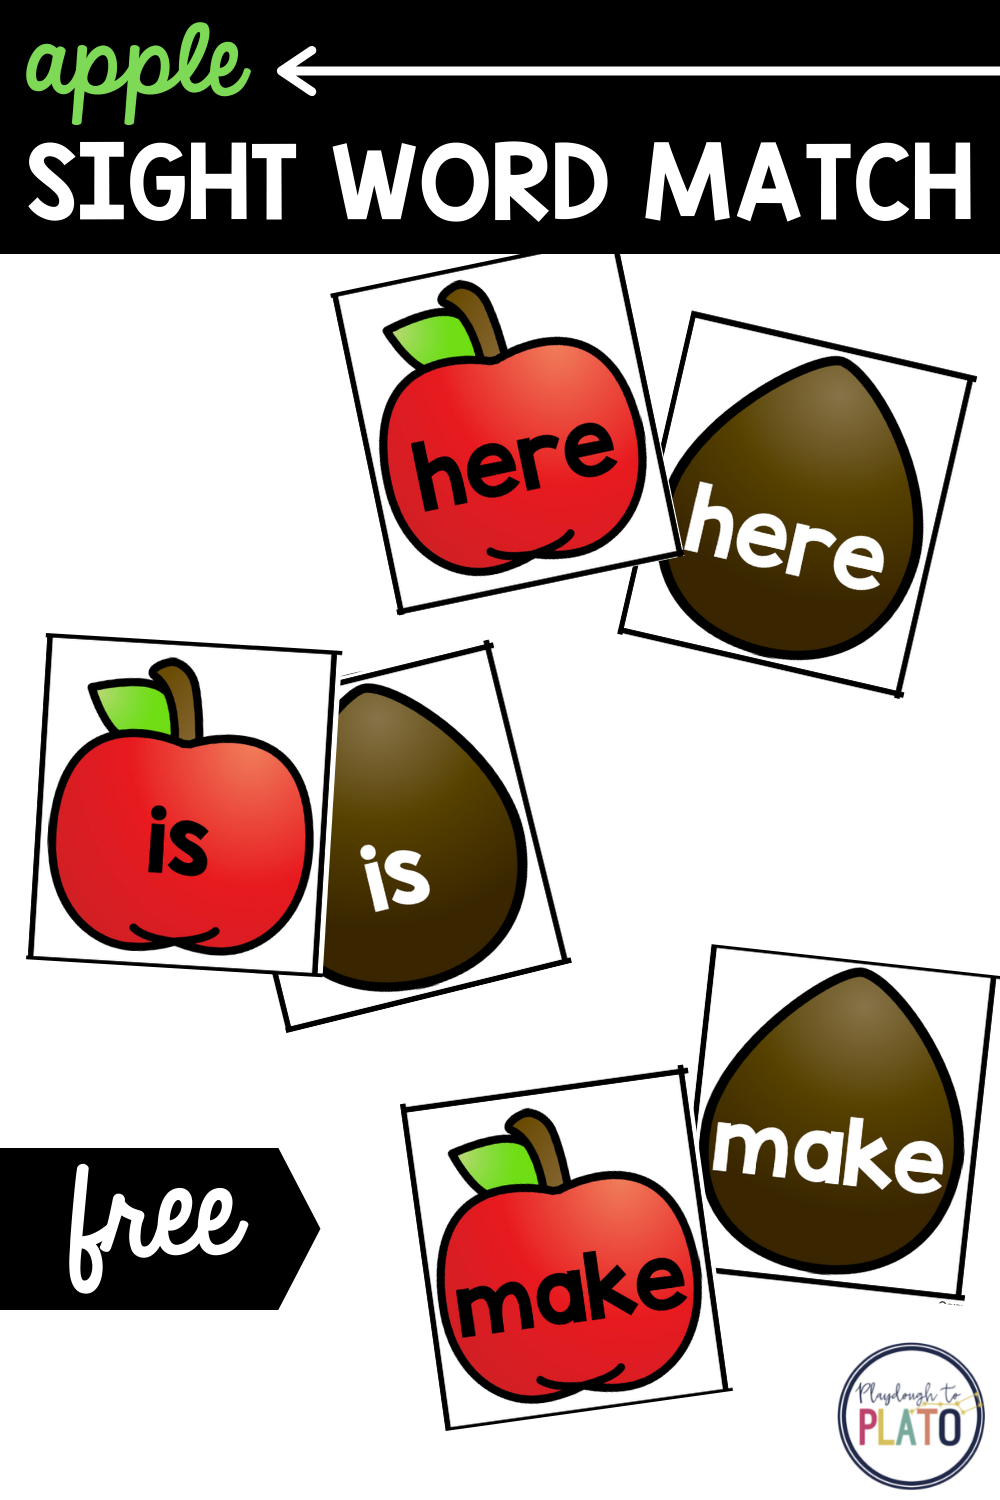 Apple Sight Word Match